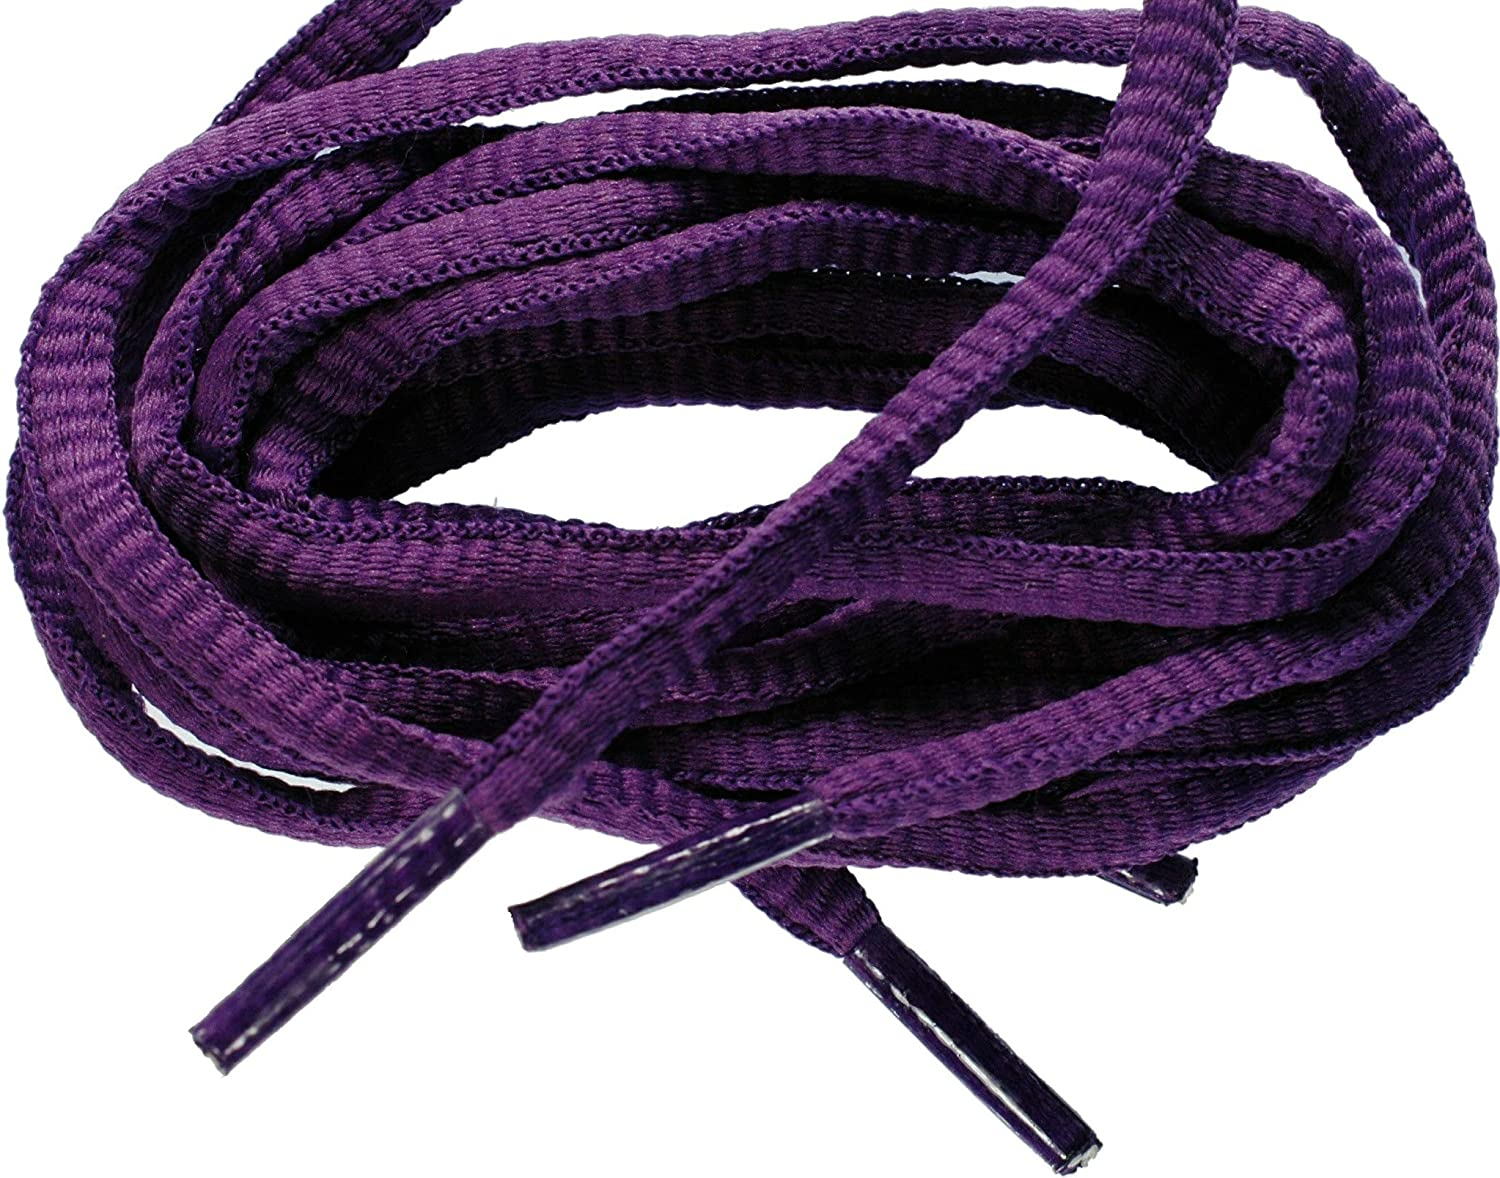 TZ Laces 6mm Oval Luxury goods Shoelaces laces sneakers runners fashion Washington Mall